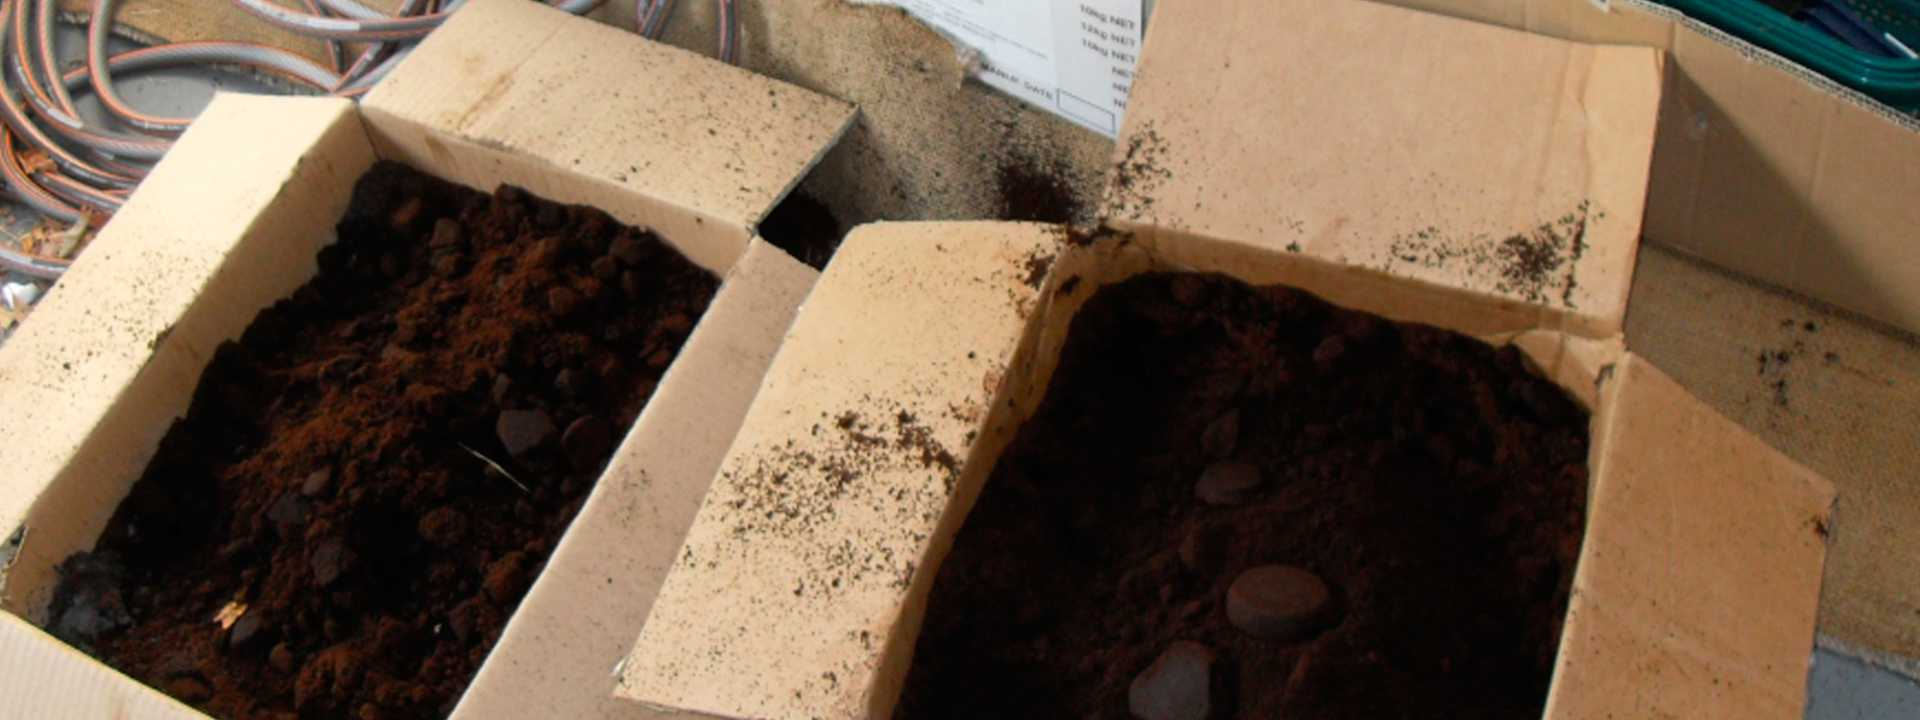 Composting with Coffee